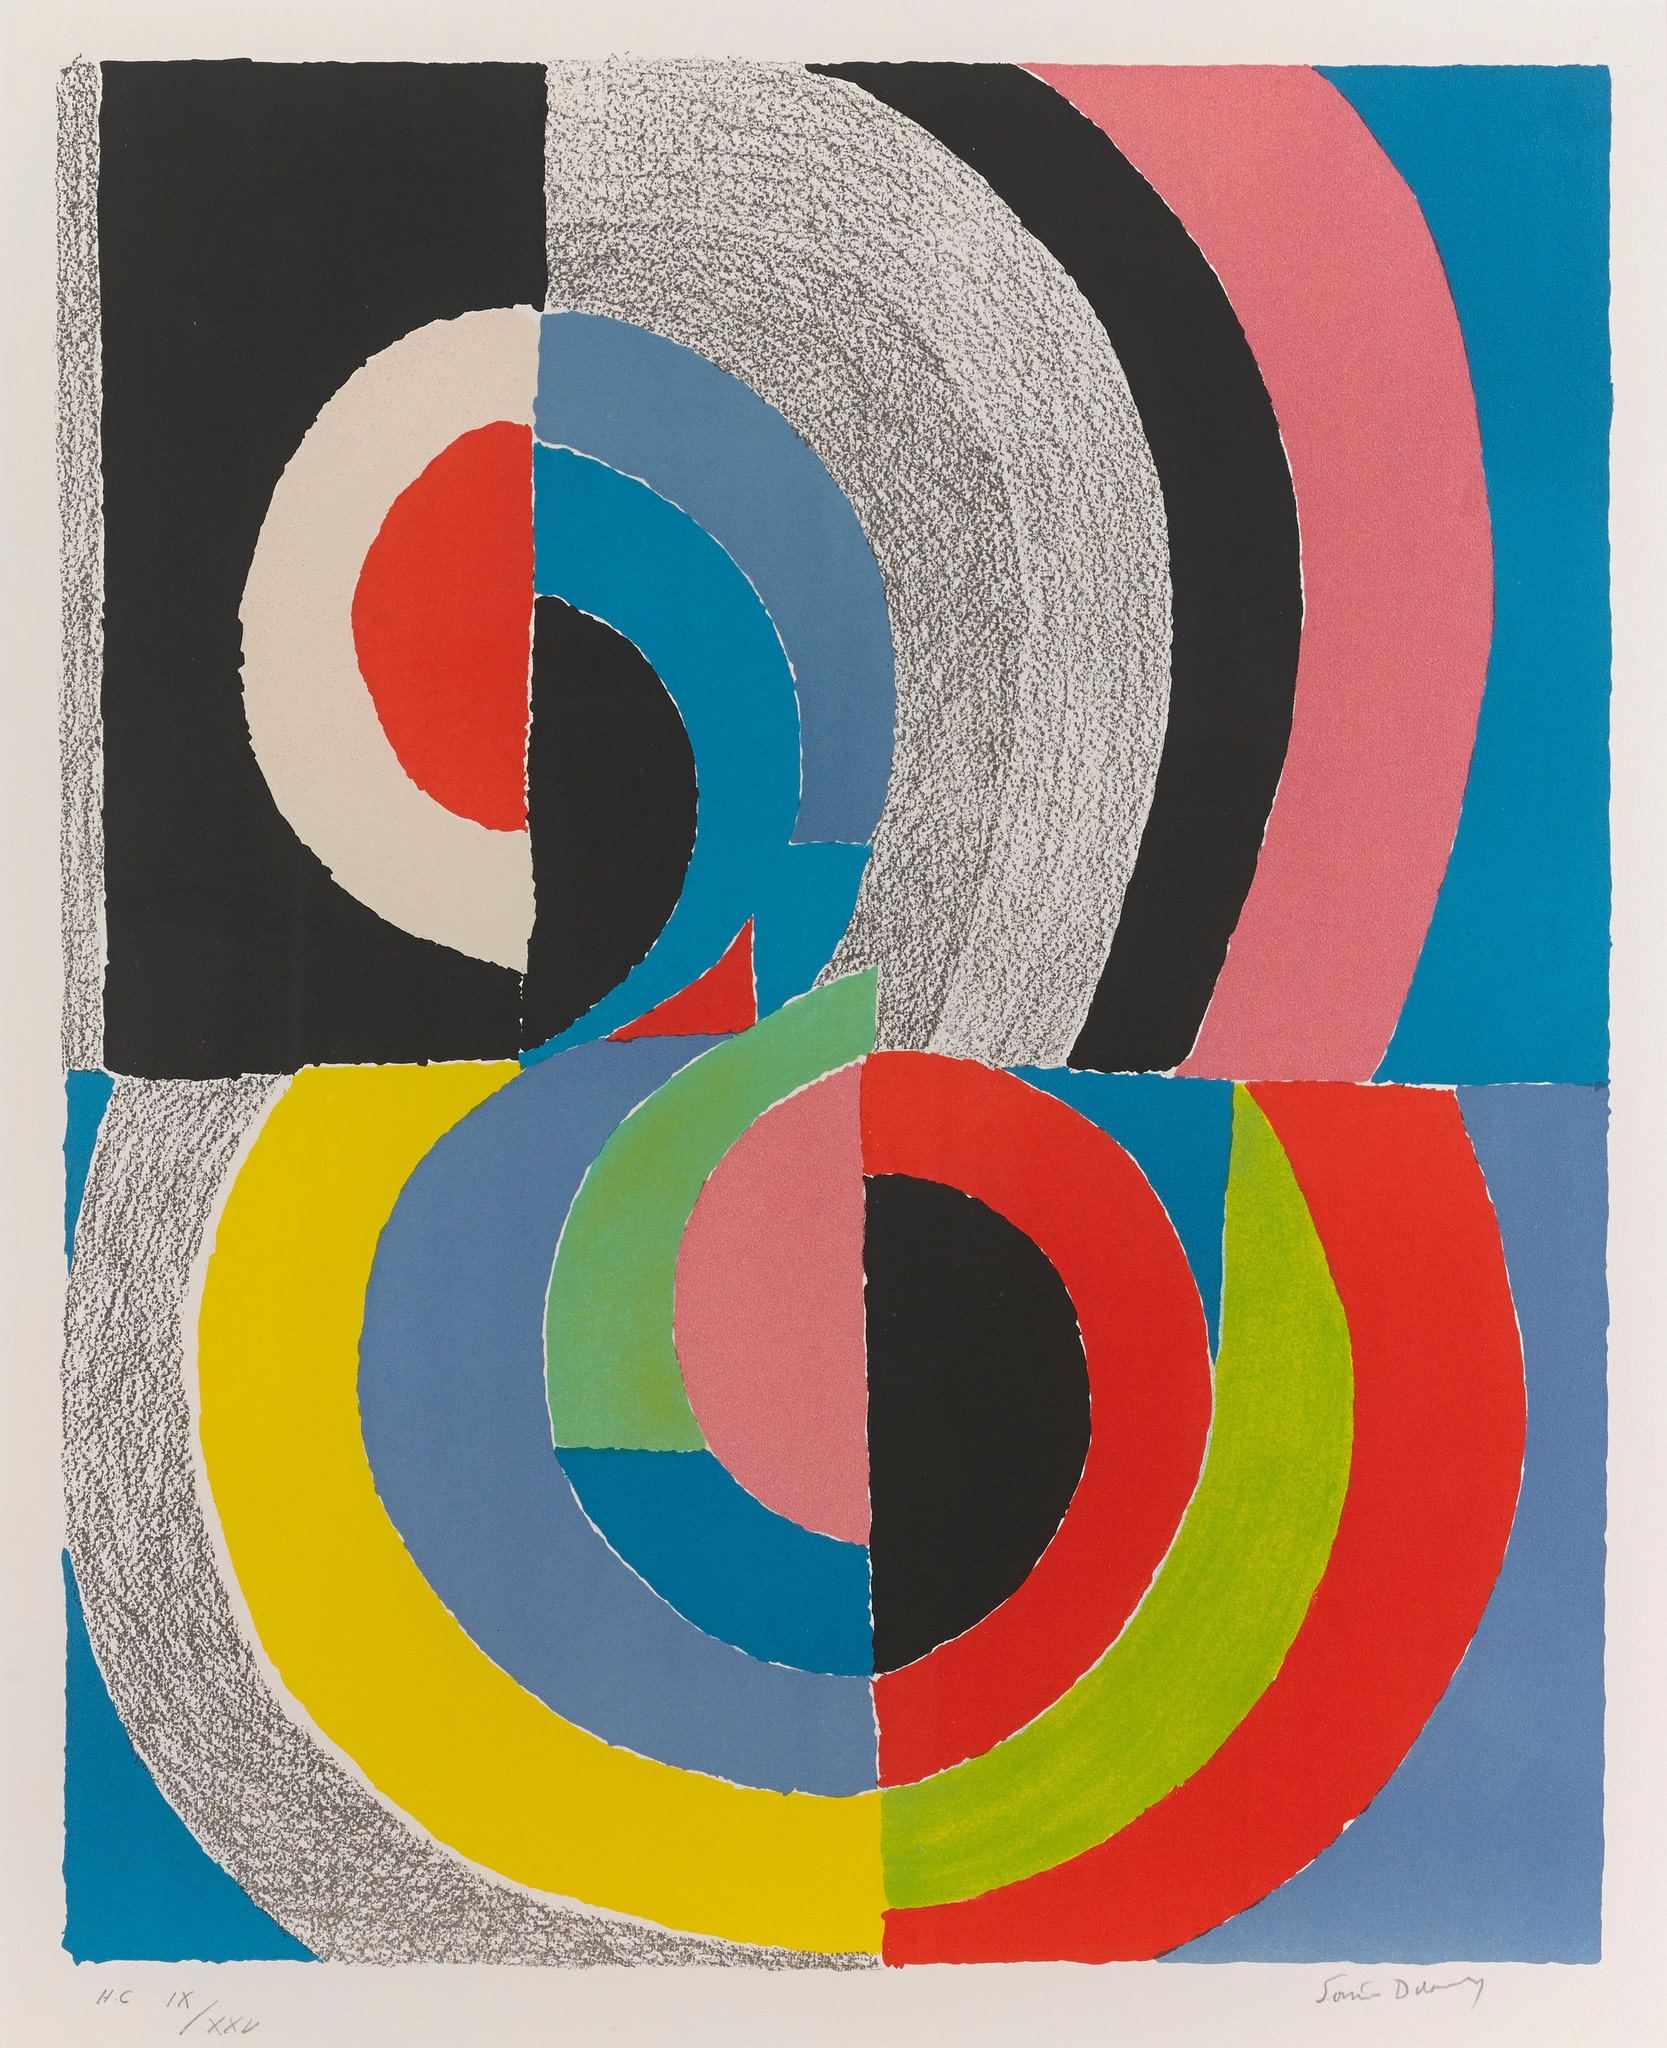 <span class=&#34;link fancybox-details-link&#34;><a href=&#34;/artists/39-sonia-delaunay/works/146/&#34;>View Detail Page</a></span><div class=&#34;artist&#34;><strong>Sonia Delaunay</strong></div> 1885 - 1979 <div class=&#34;title&#34;><em>Plougastel</em>, 1970</div> <div class=&#34;signed_and_dated&#34;>signed in pencil, numbered H.C IX/XXV, a hors commerce impression, aside from the edition of 75, published by Galerie de Varenne, Paris, with wide margins, in very good condition.</div> <div class=&#34;medium&#34;>Lithograph in colours</div> <div class=&#34;dimensions&#34;>Sheet:<br />29 7/8 x 22 1/8 in<br />76 x 56 cm</div><div class=&#34;copyright_line&#34;>Copyright The Artist</div>